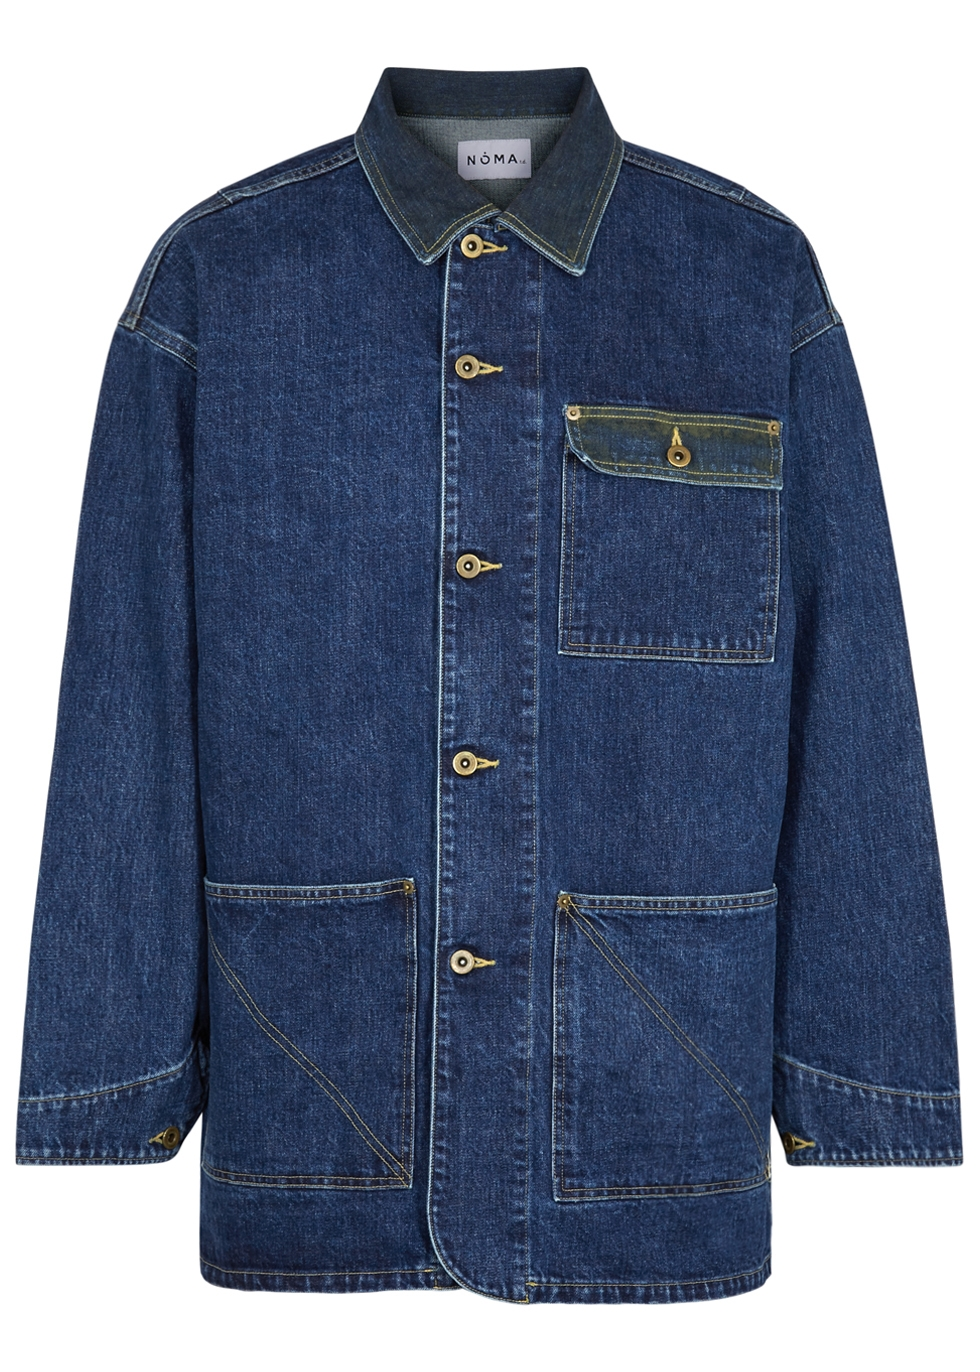 NOMA T.D Dark Blue Distressed Denim Jacket